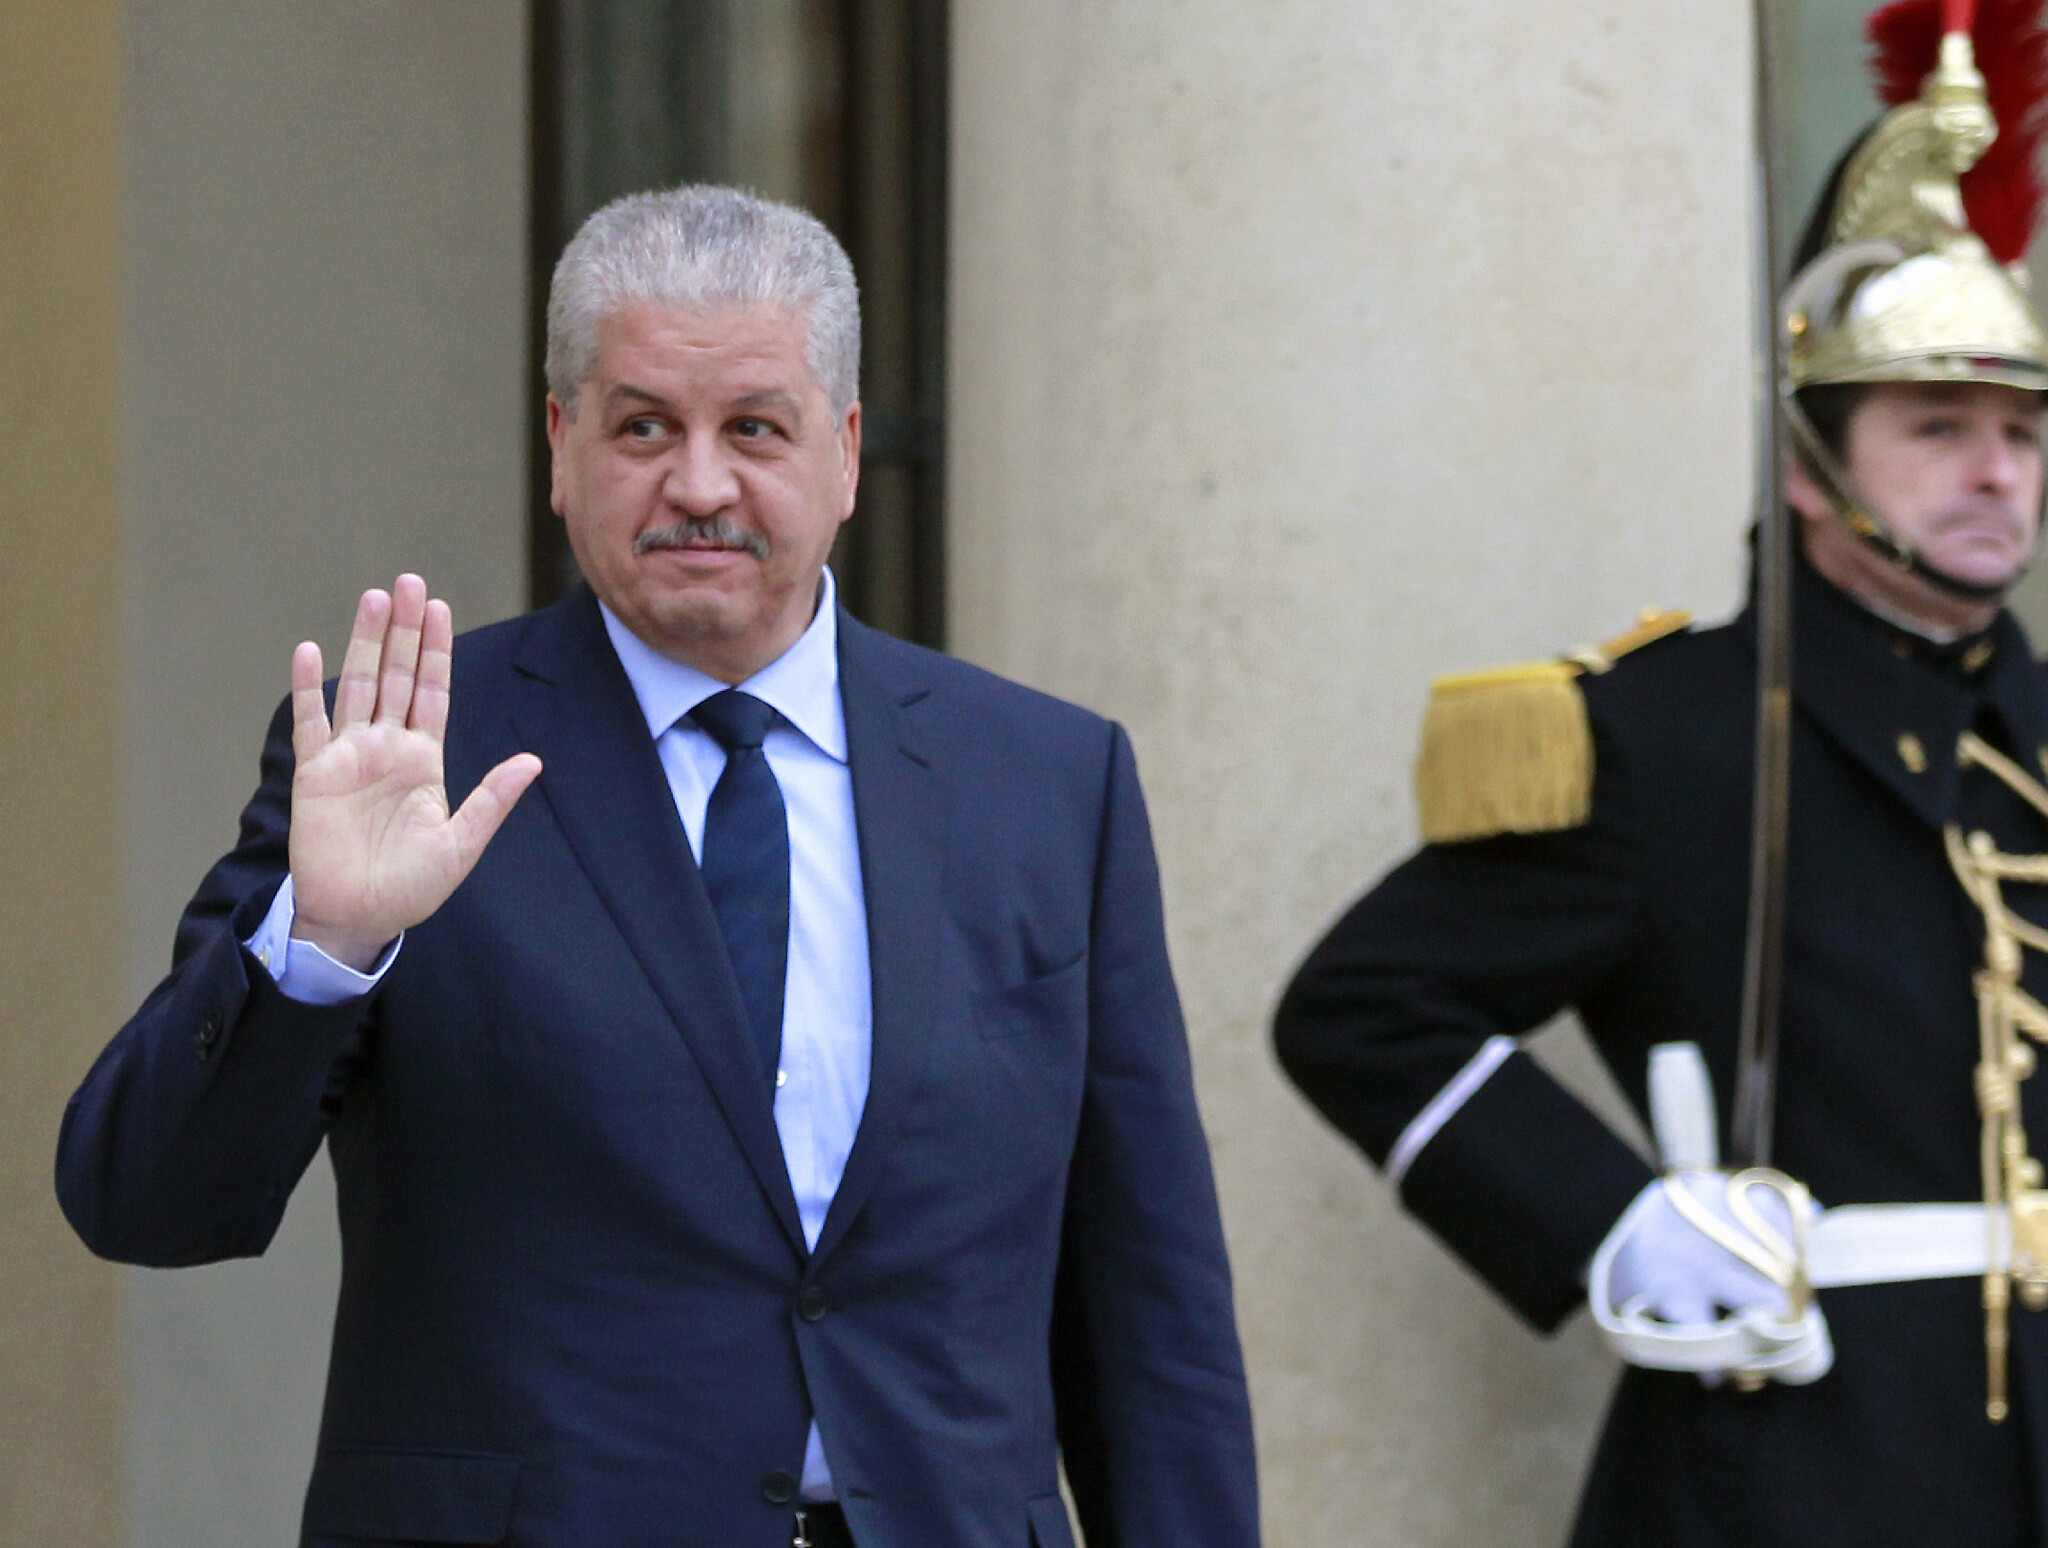 Algerian court convicts two fmr prime ministers of corruption ahead of election